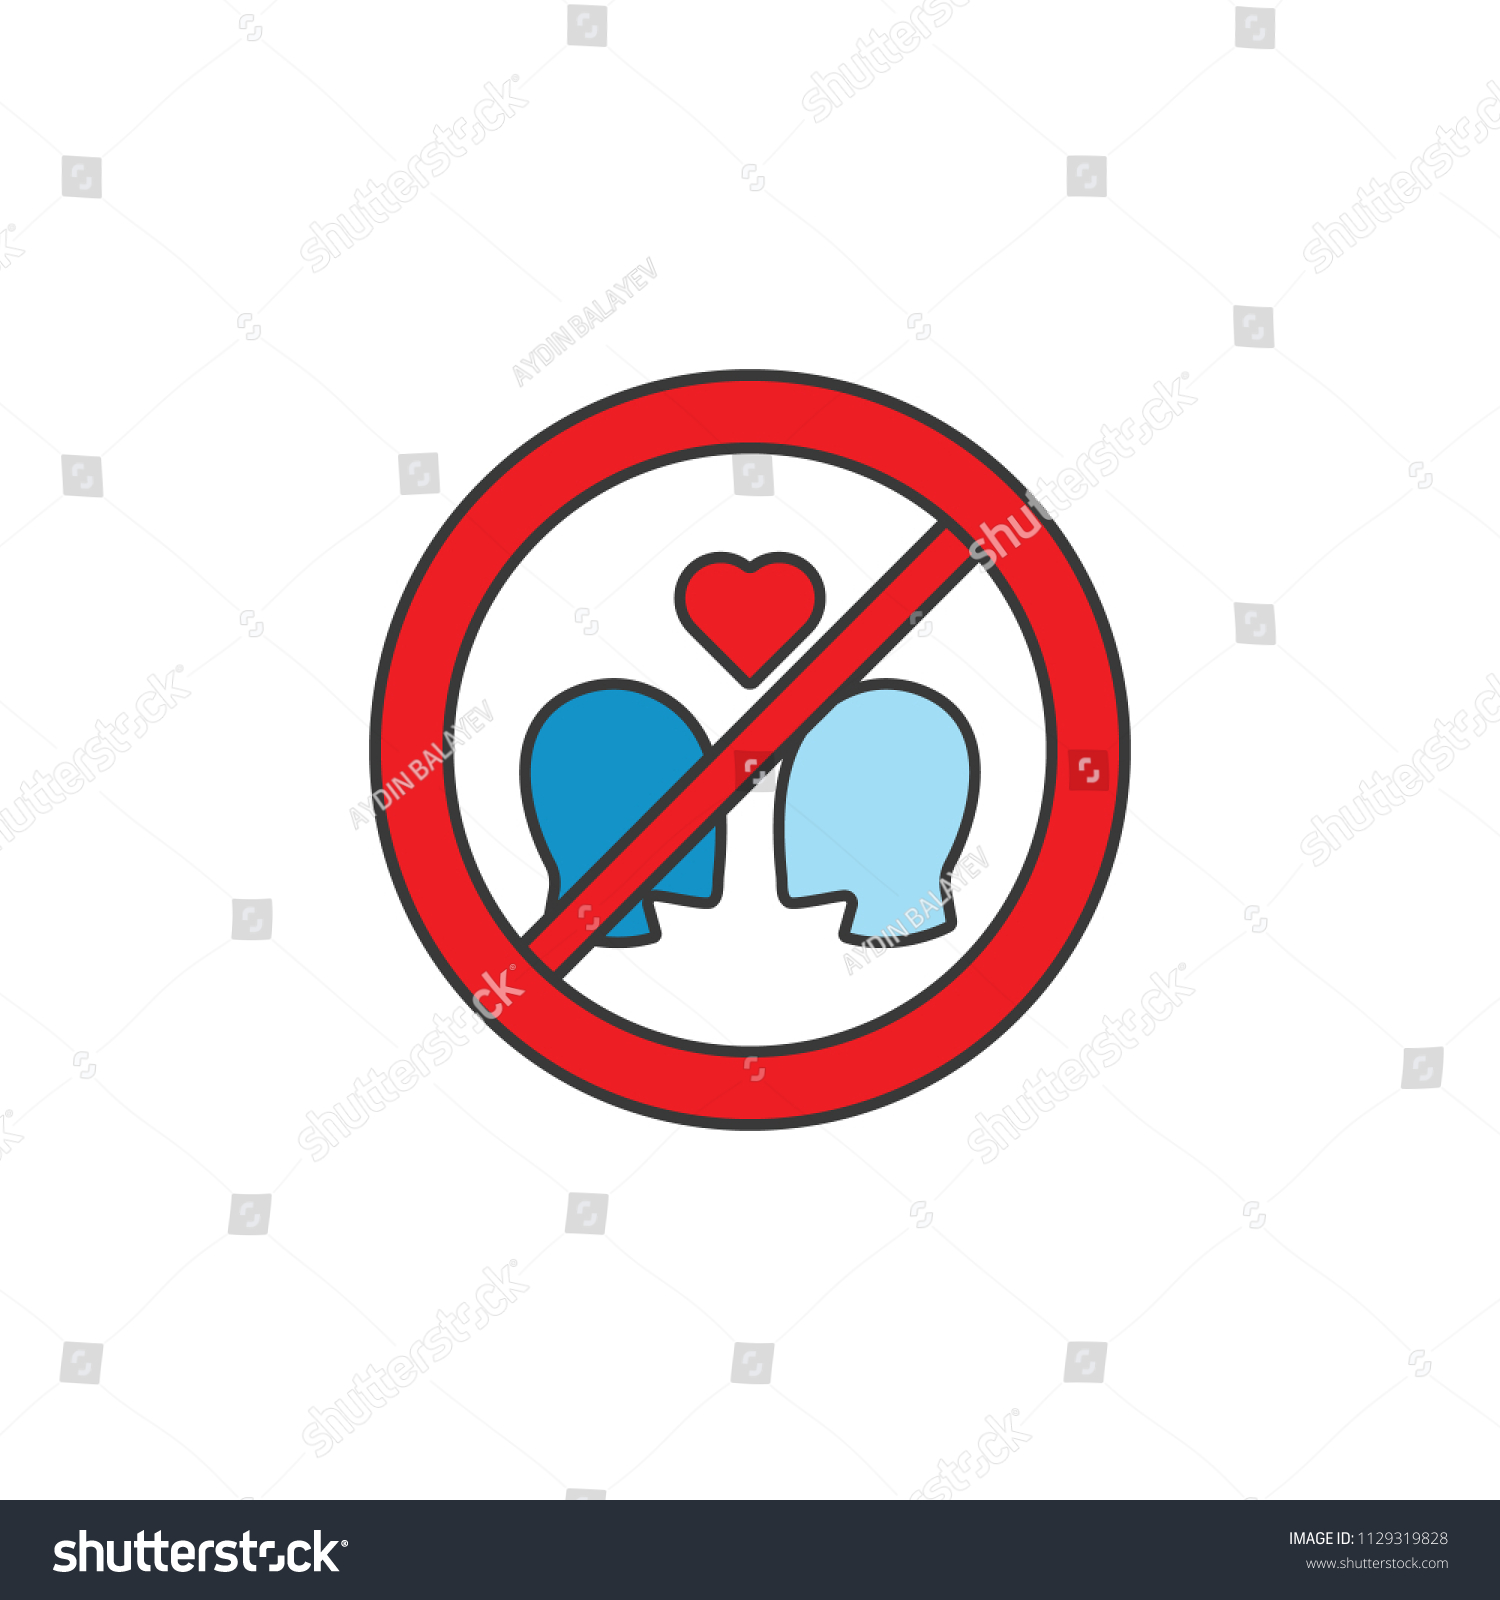 Ban Love Heart Filled Outline Symbol Stock Vector Royalty Free